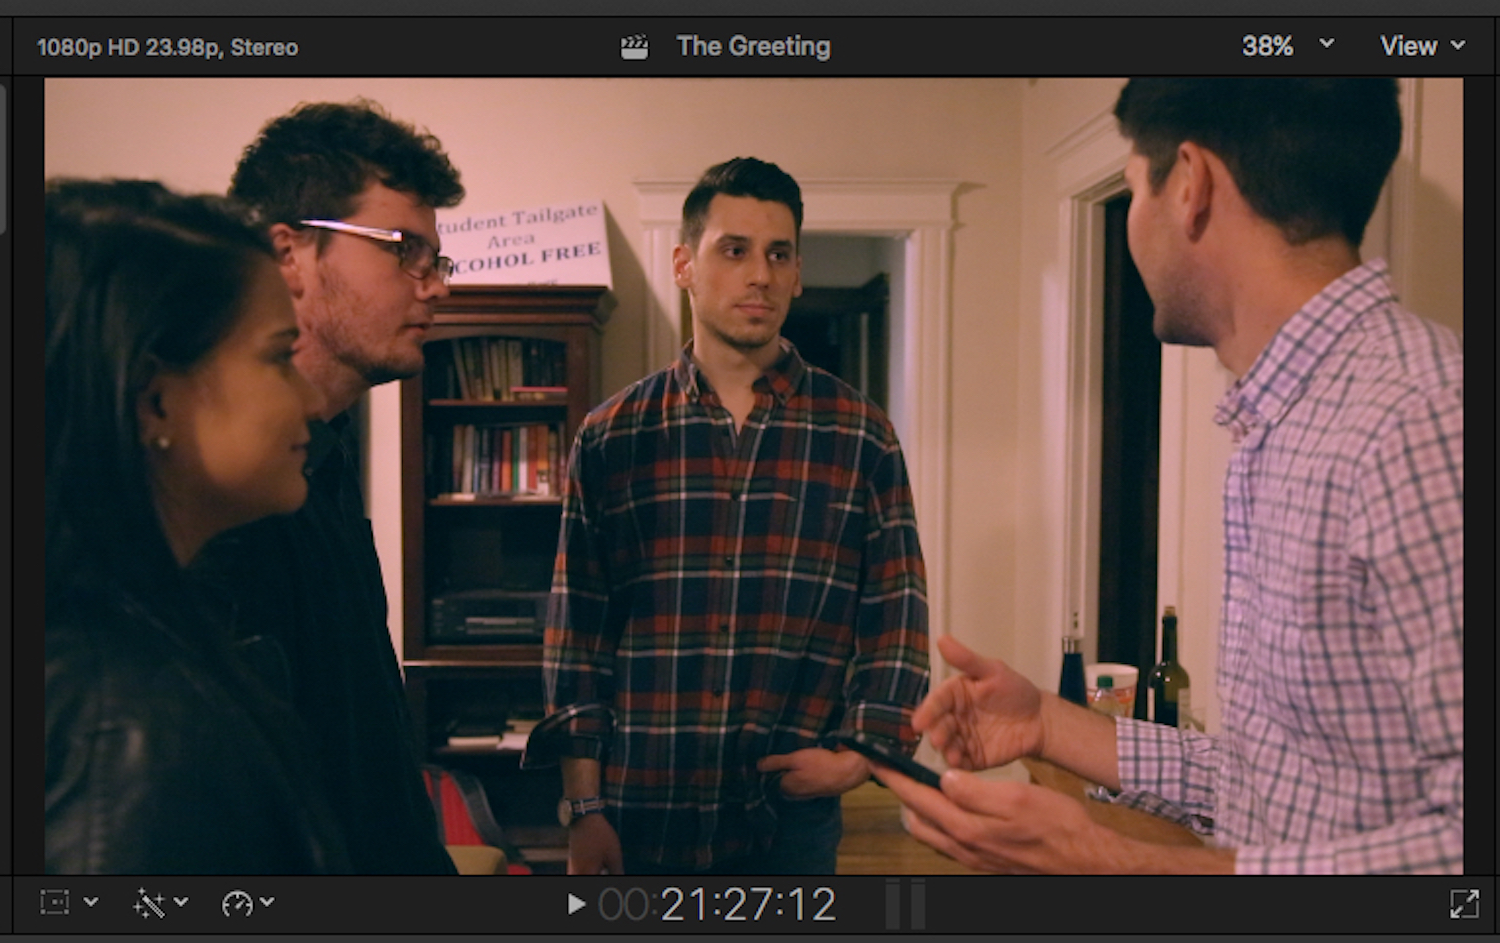 As a member of The Moveable Joints, Trinity College's improv group, I recruited nearly all of the members to be in my movie. I wanted actors that had comedic timing and I knew could work off-script if needed.